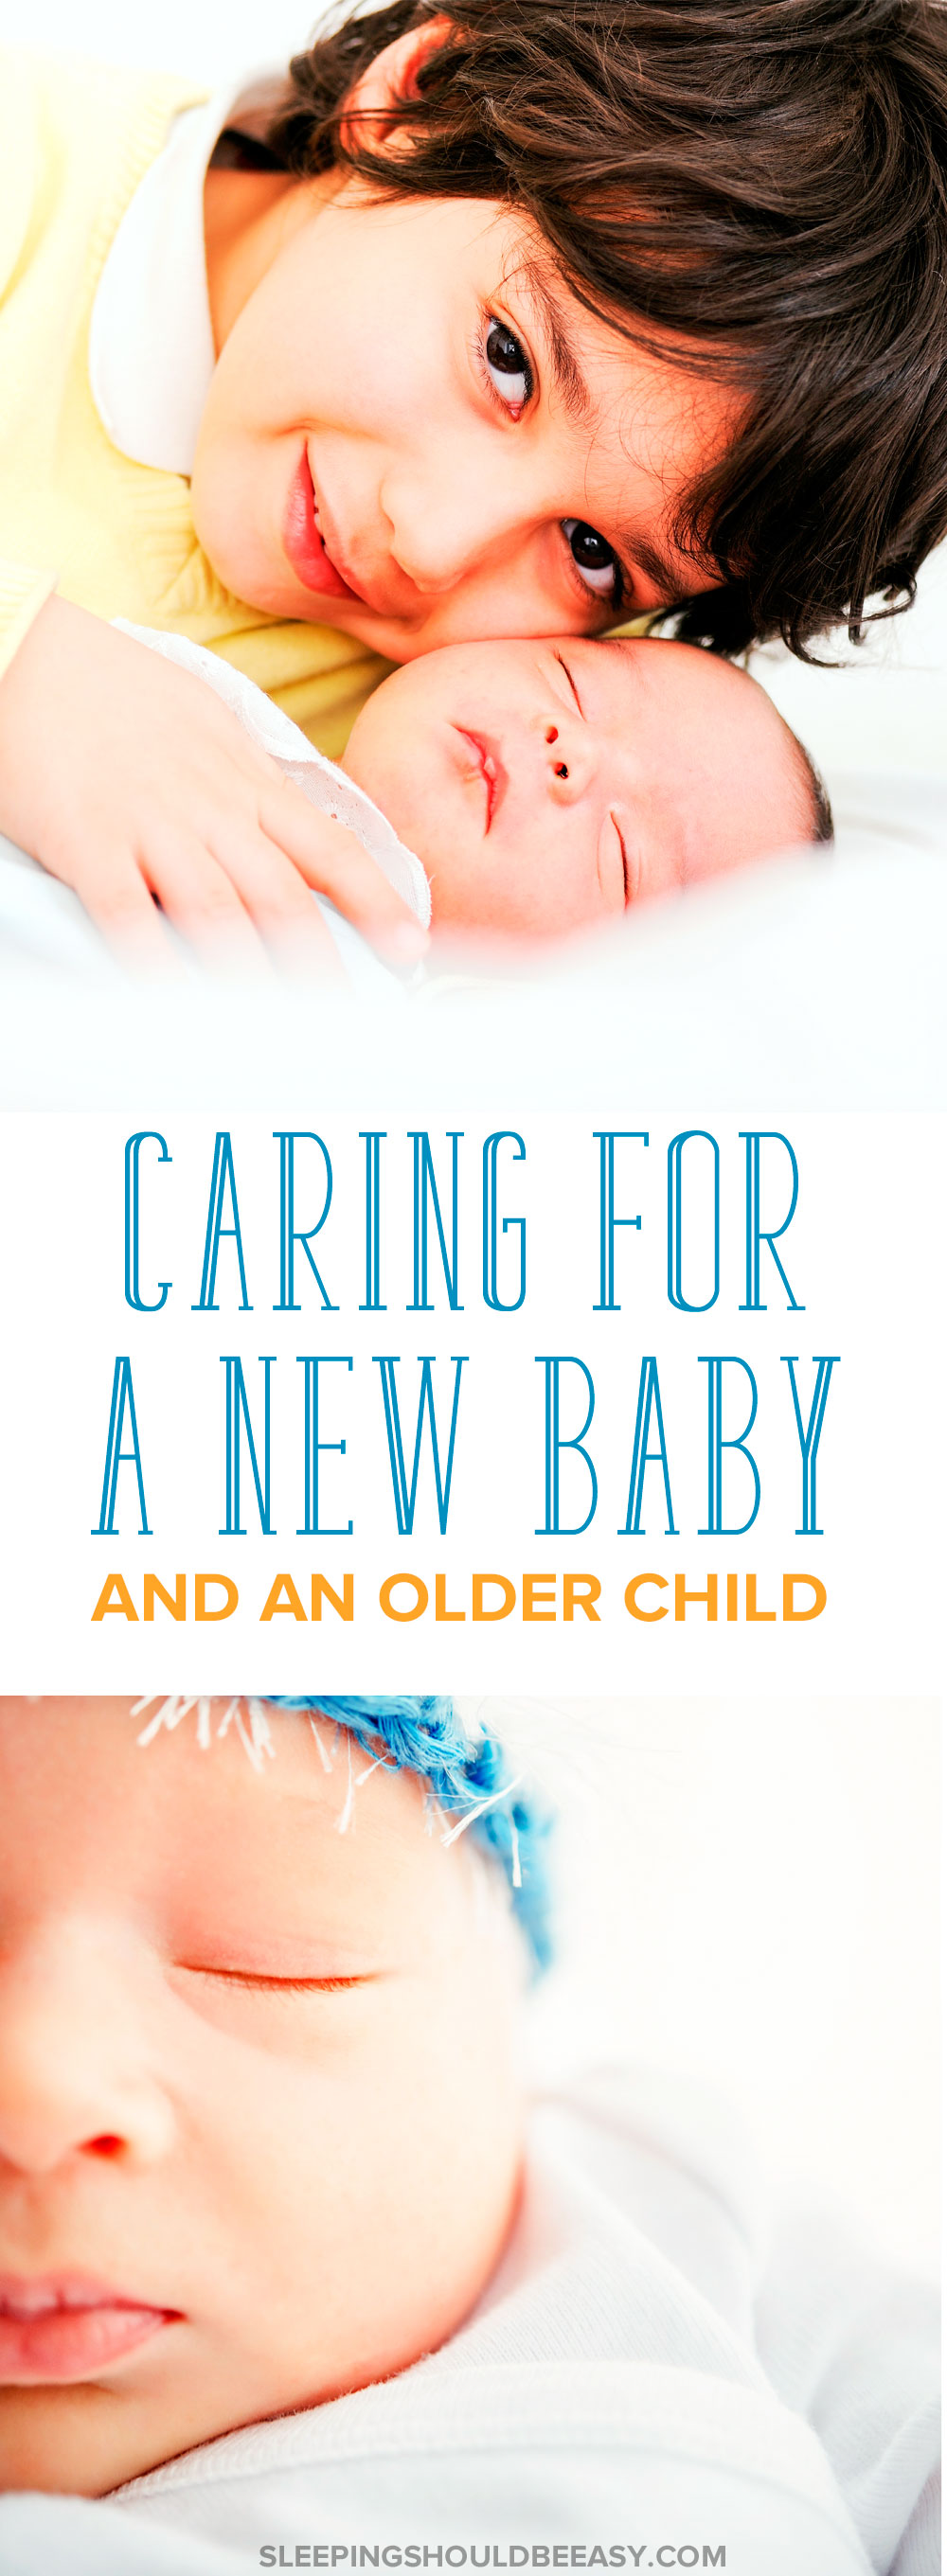 What do you do when you're caring for a baby AND your older child? Here are tips on handling a toddler and a newborn and how to balance their needs.